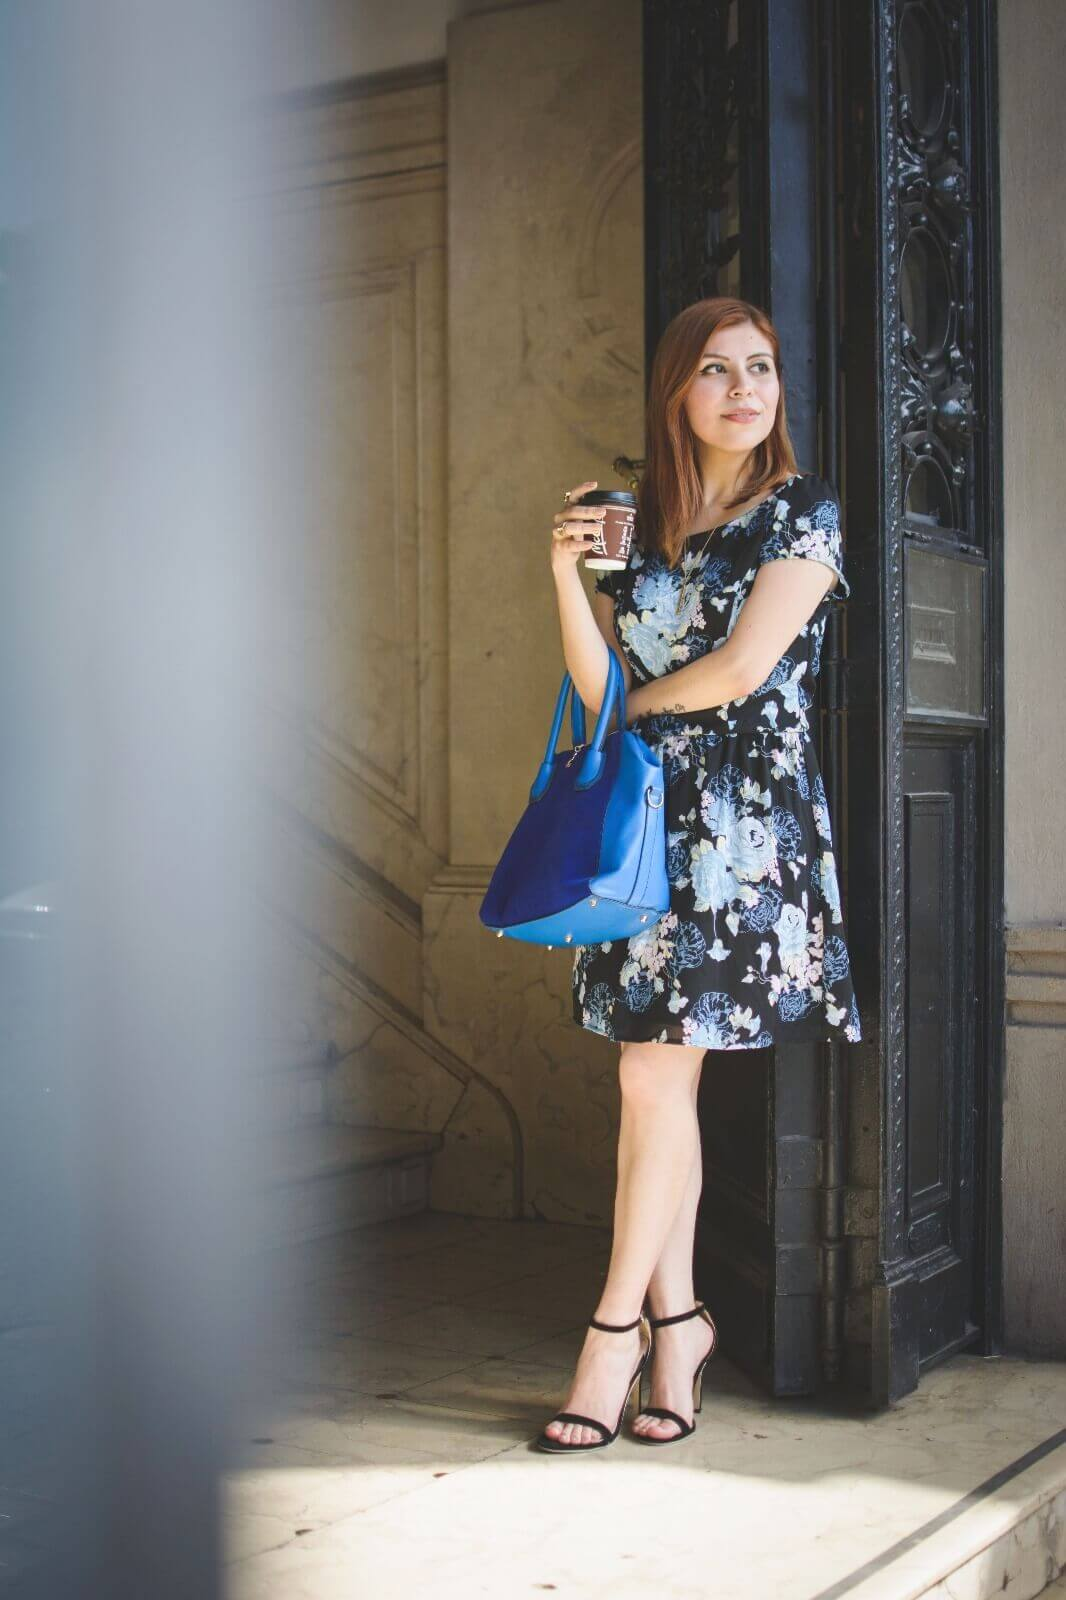 gamiss-black-strappy-sandals-blue-floral-dress-rosegal-cobalt-blue-tote-bag-deborah-ferrero-style-by-deb04